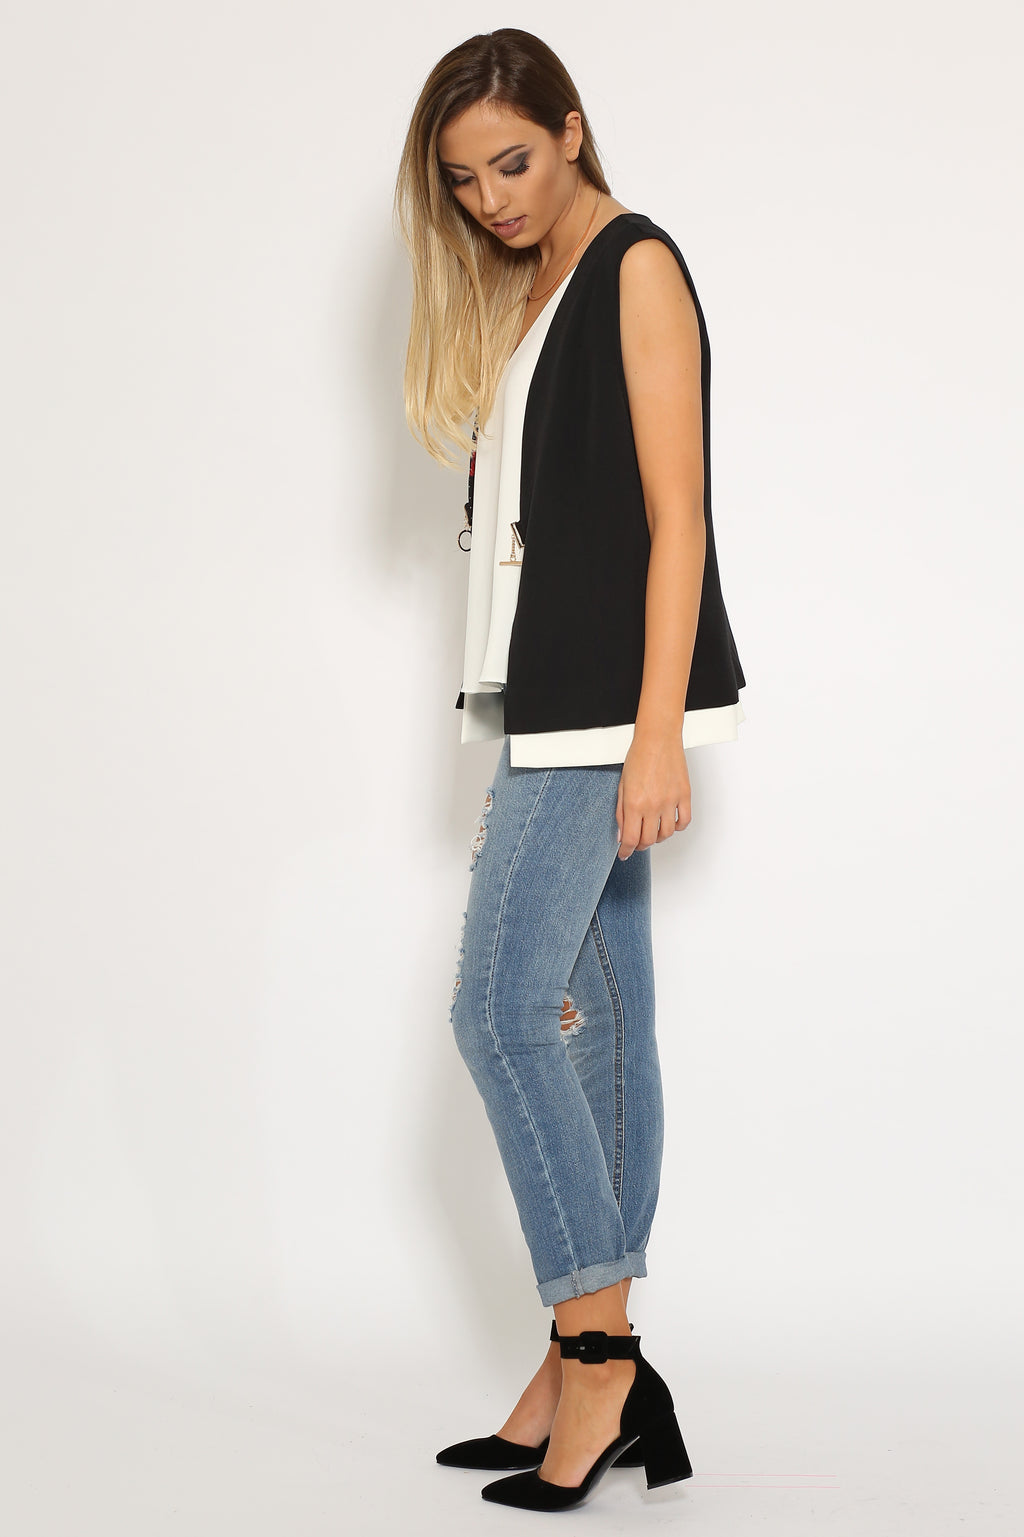 Hot Ripped Jeans - VESTITI LB